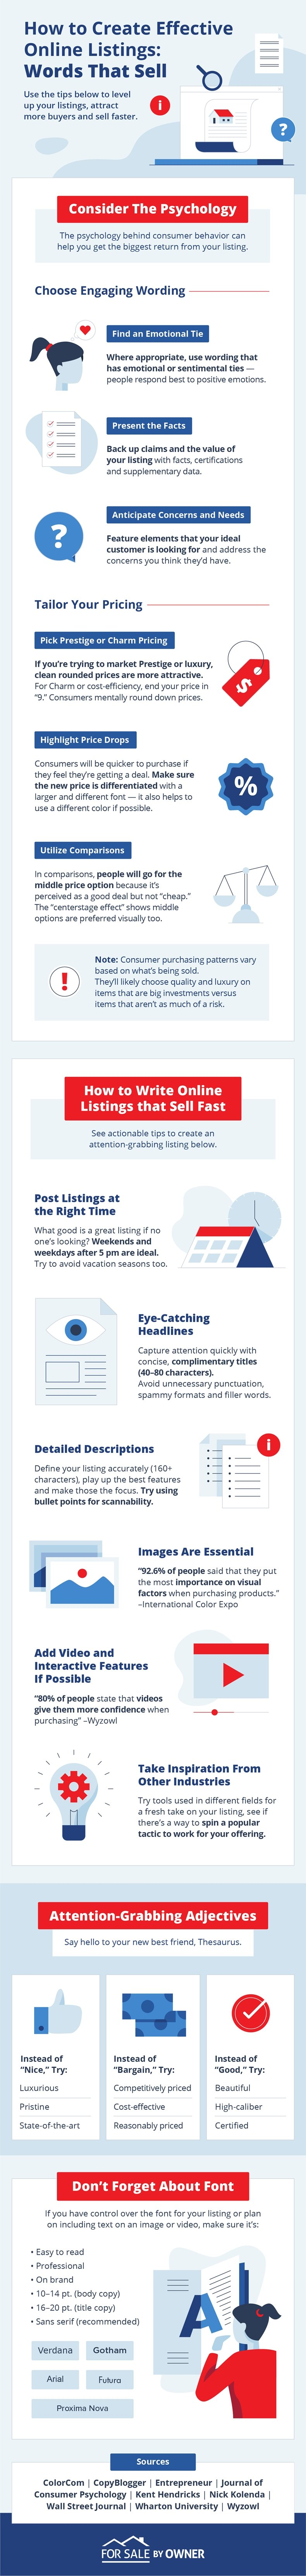 Tips for Online Listings That Grab Attention and Generate Sales [Infographic] : MarketingProfs Article 1